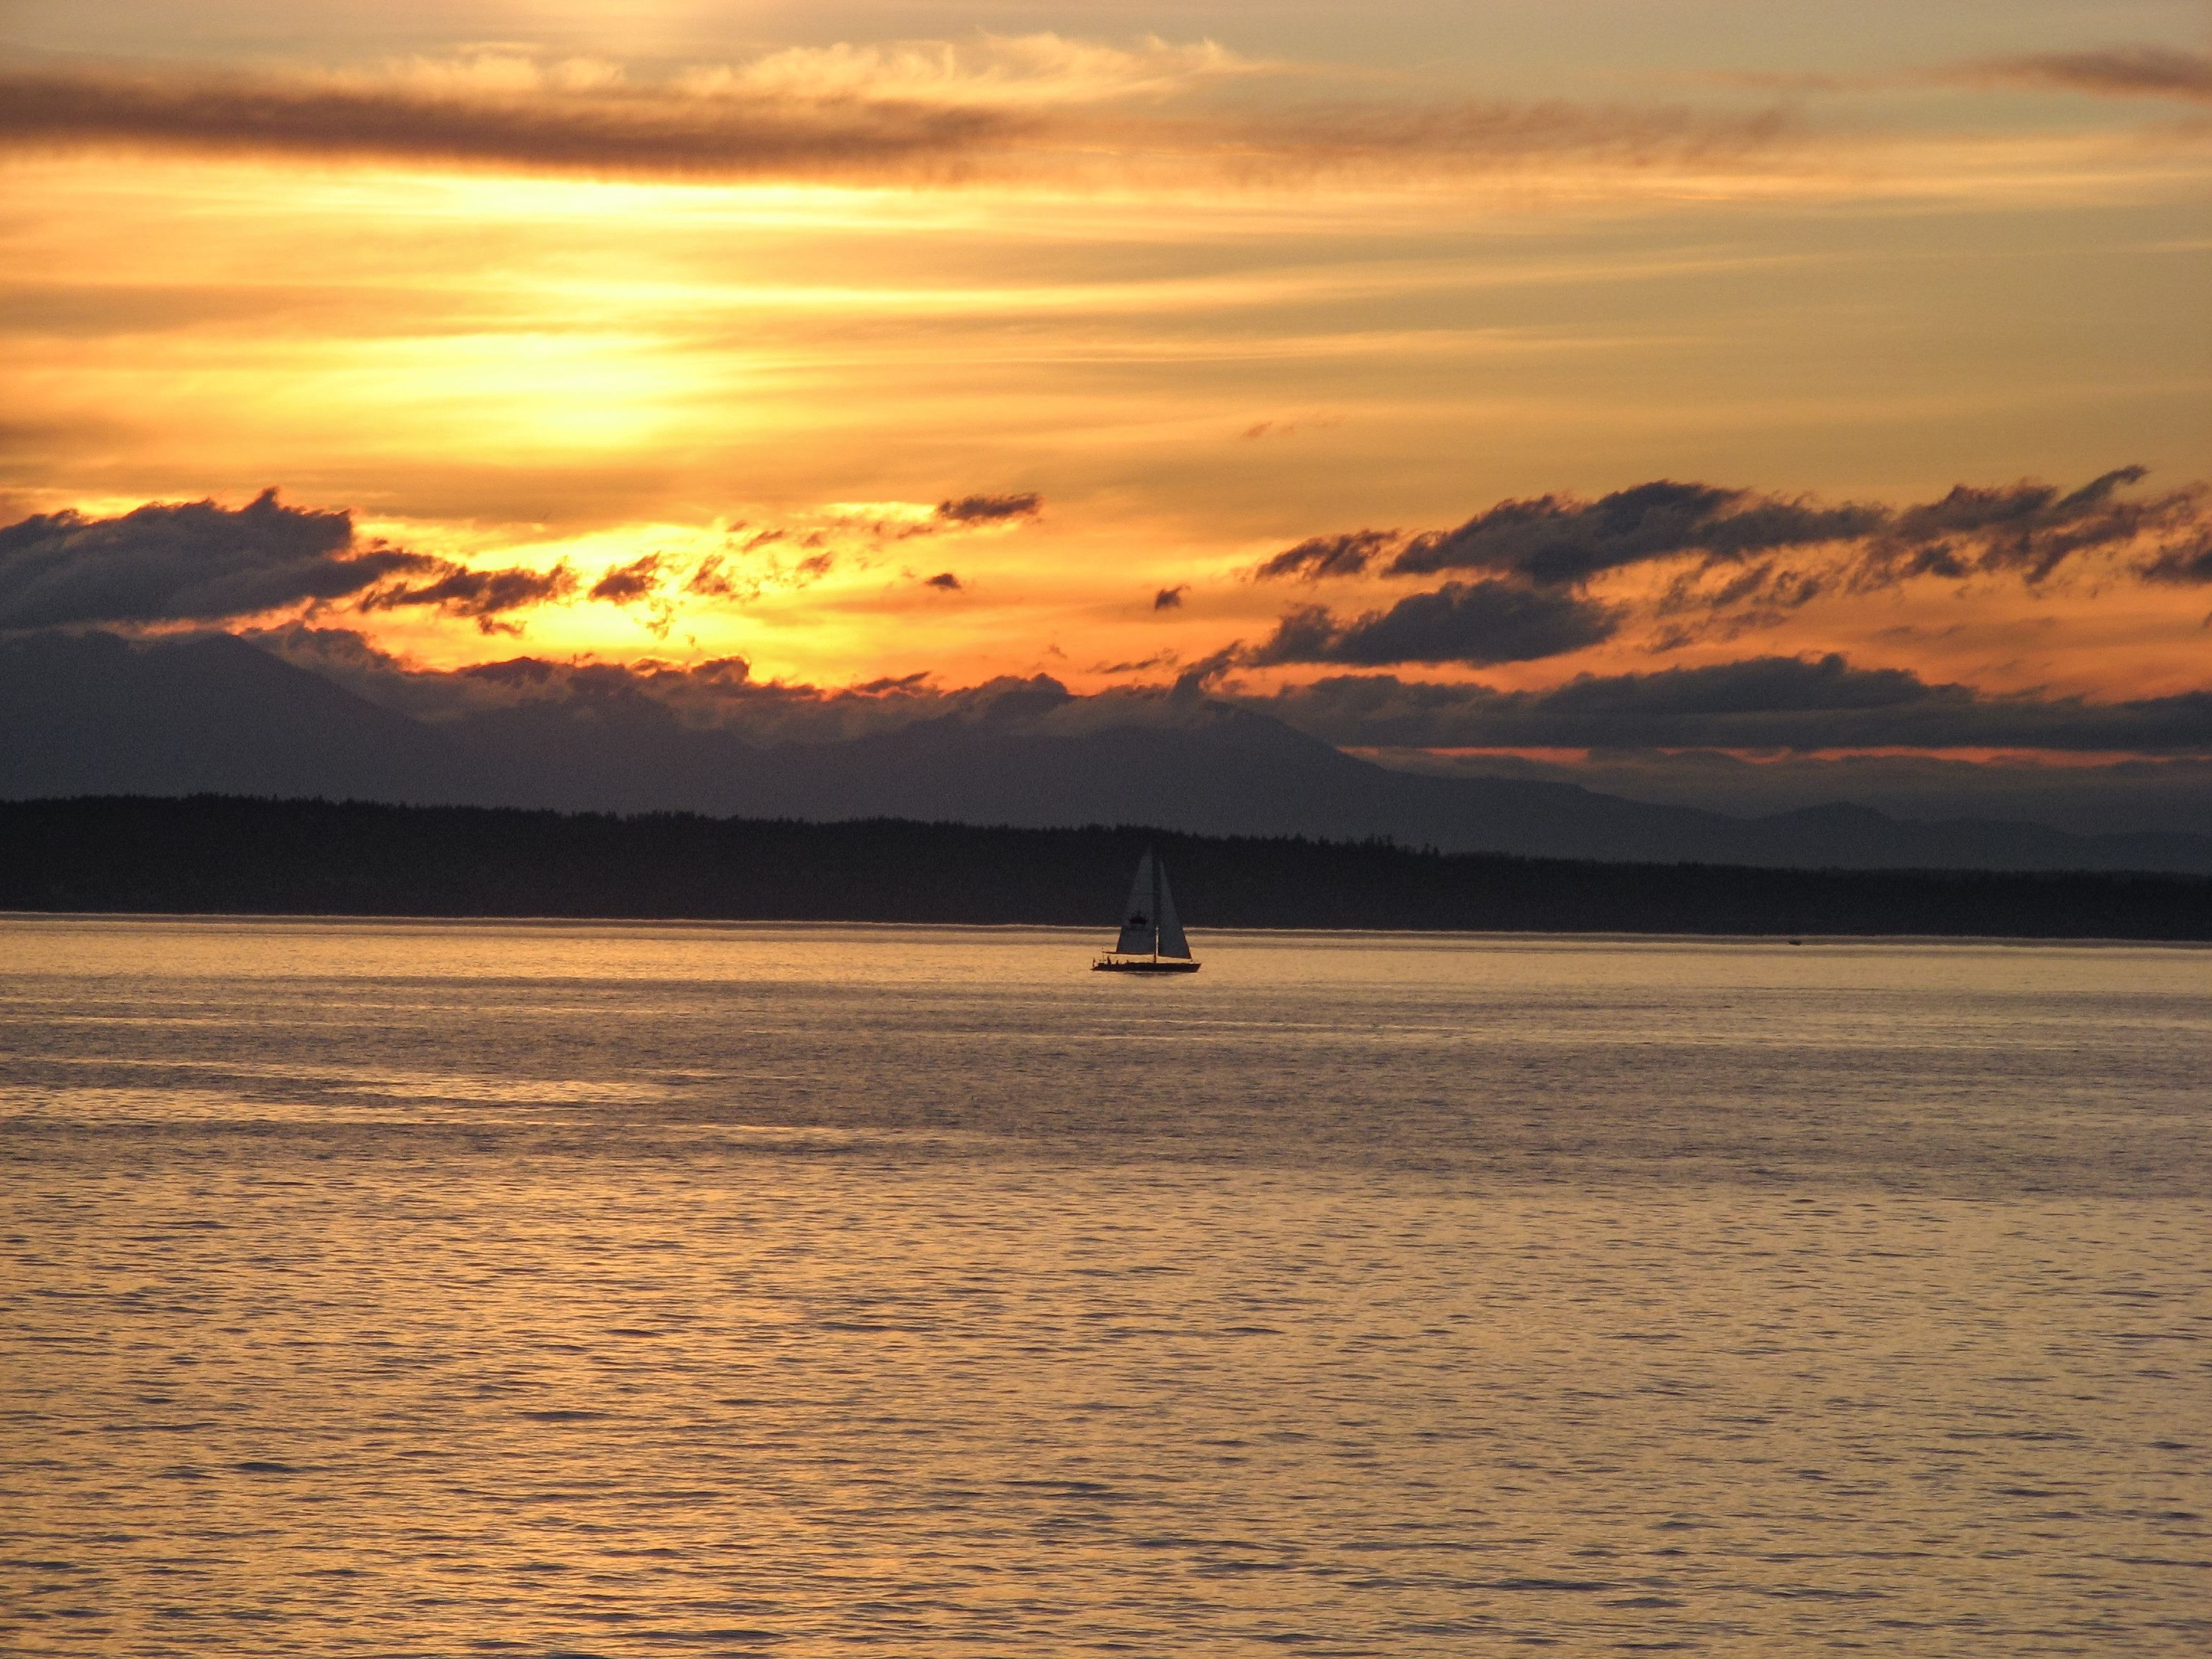 Sunset Cruise Pugetsound Like Us To Start Each Day With A